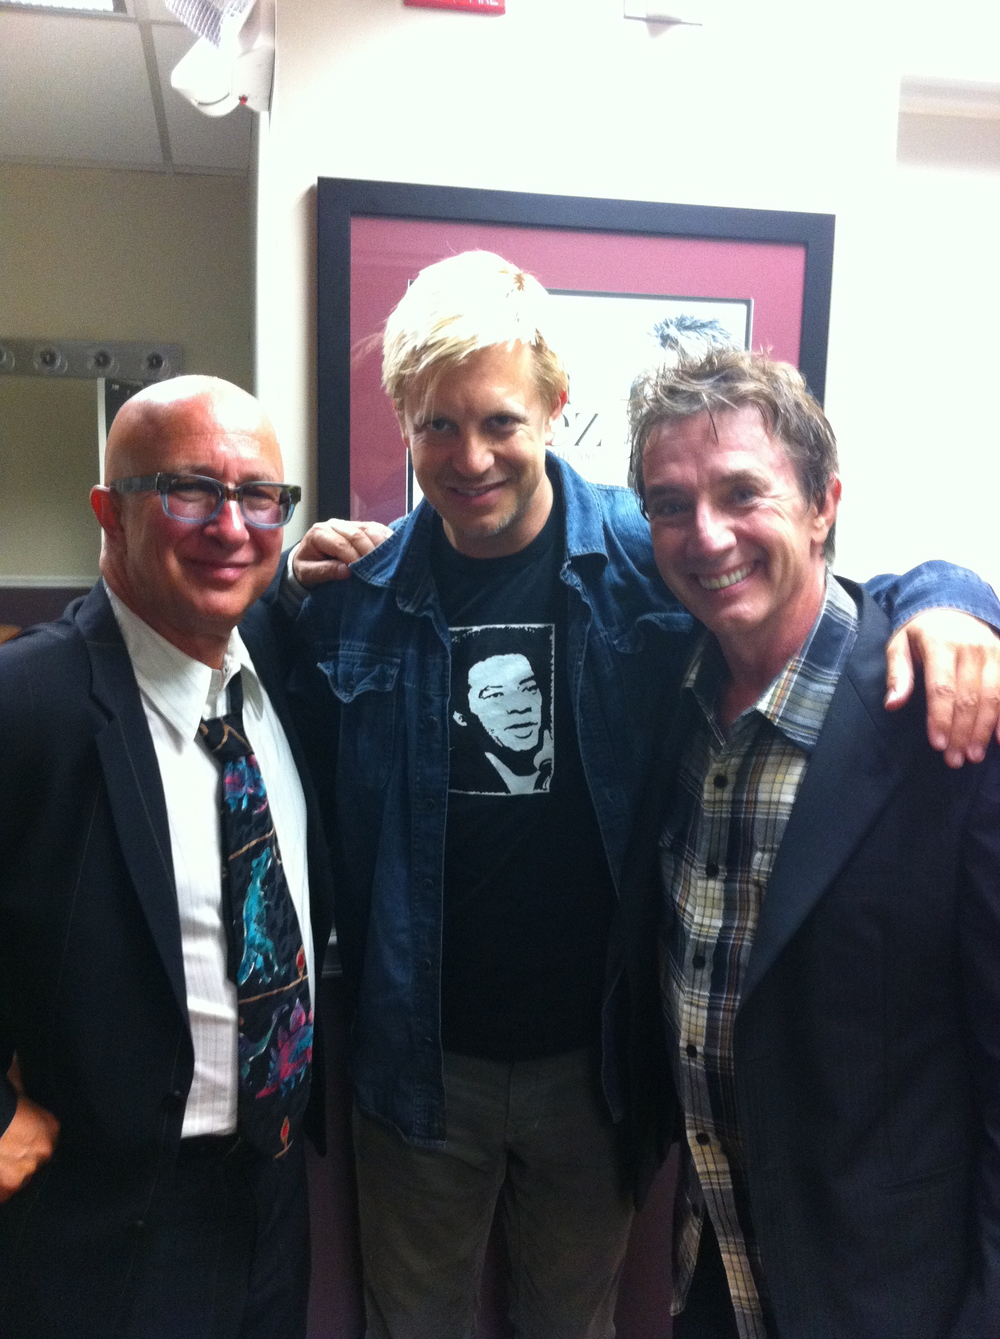 w/ Paul Shaffer & Martin Short after concert